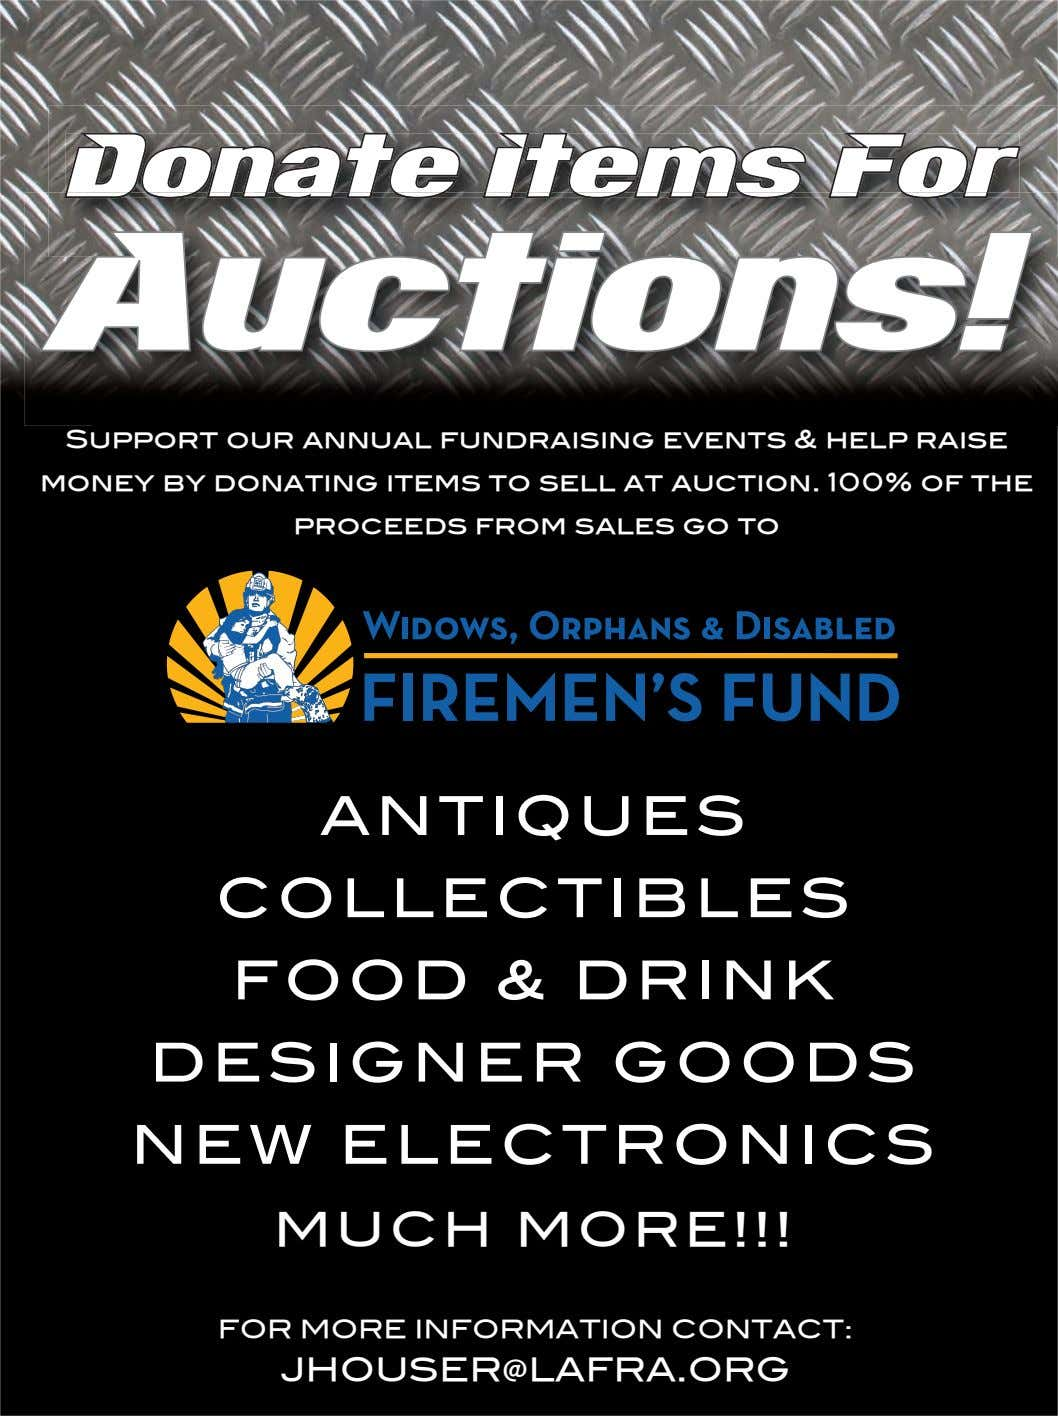 Donate Items For Auctions! Support our annual fundraising events & help raise money by donating